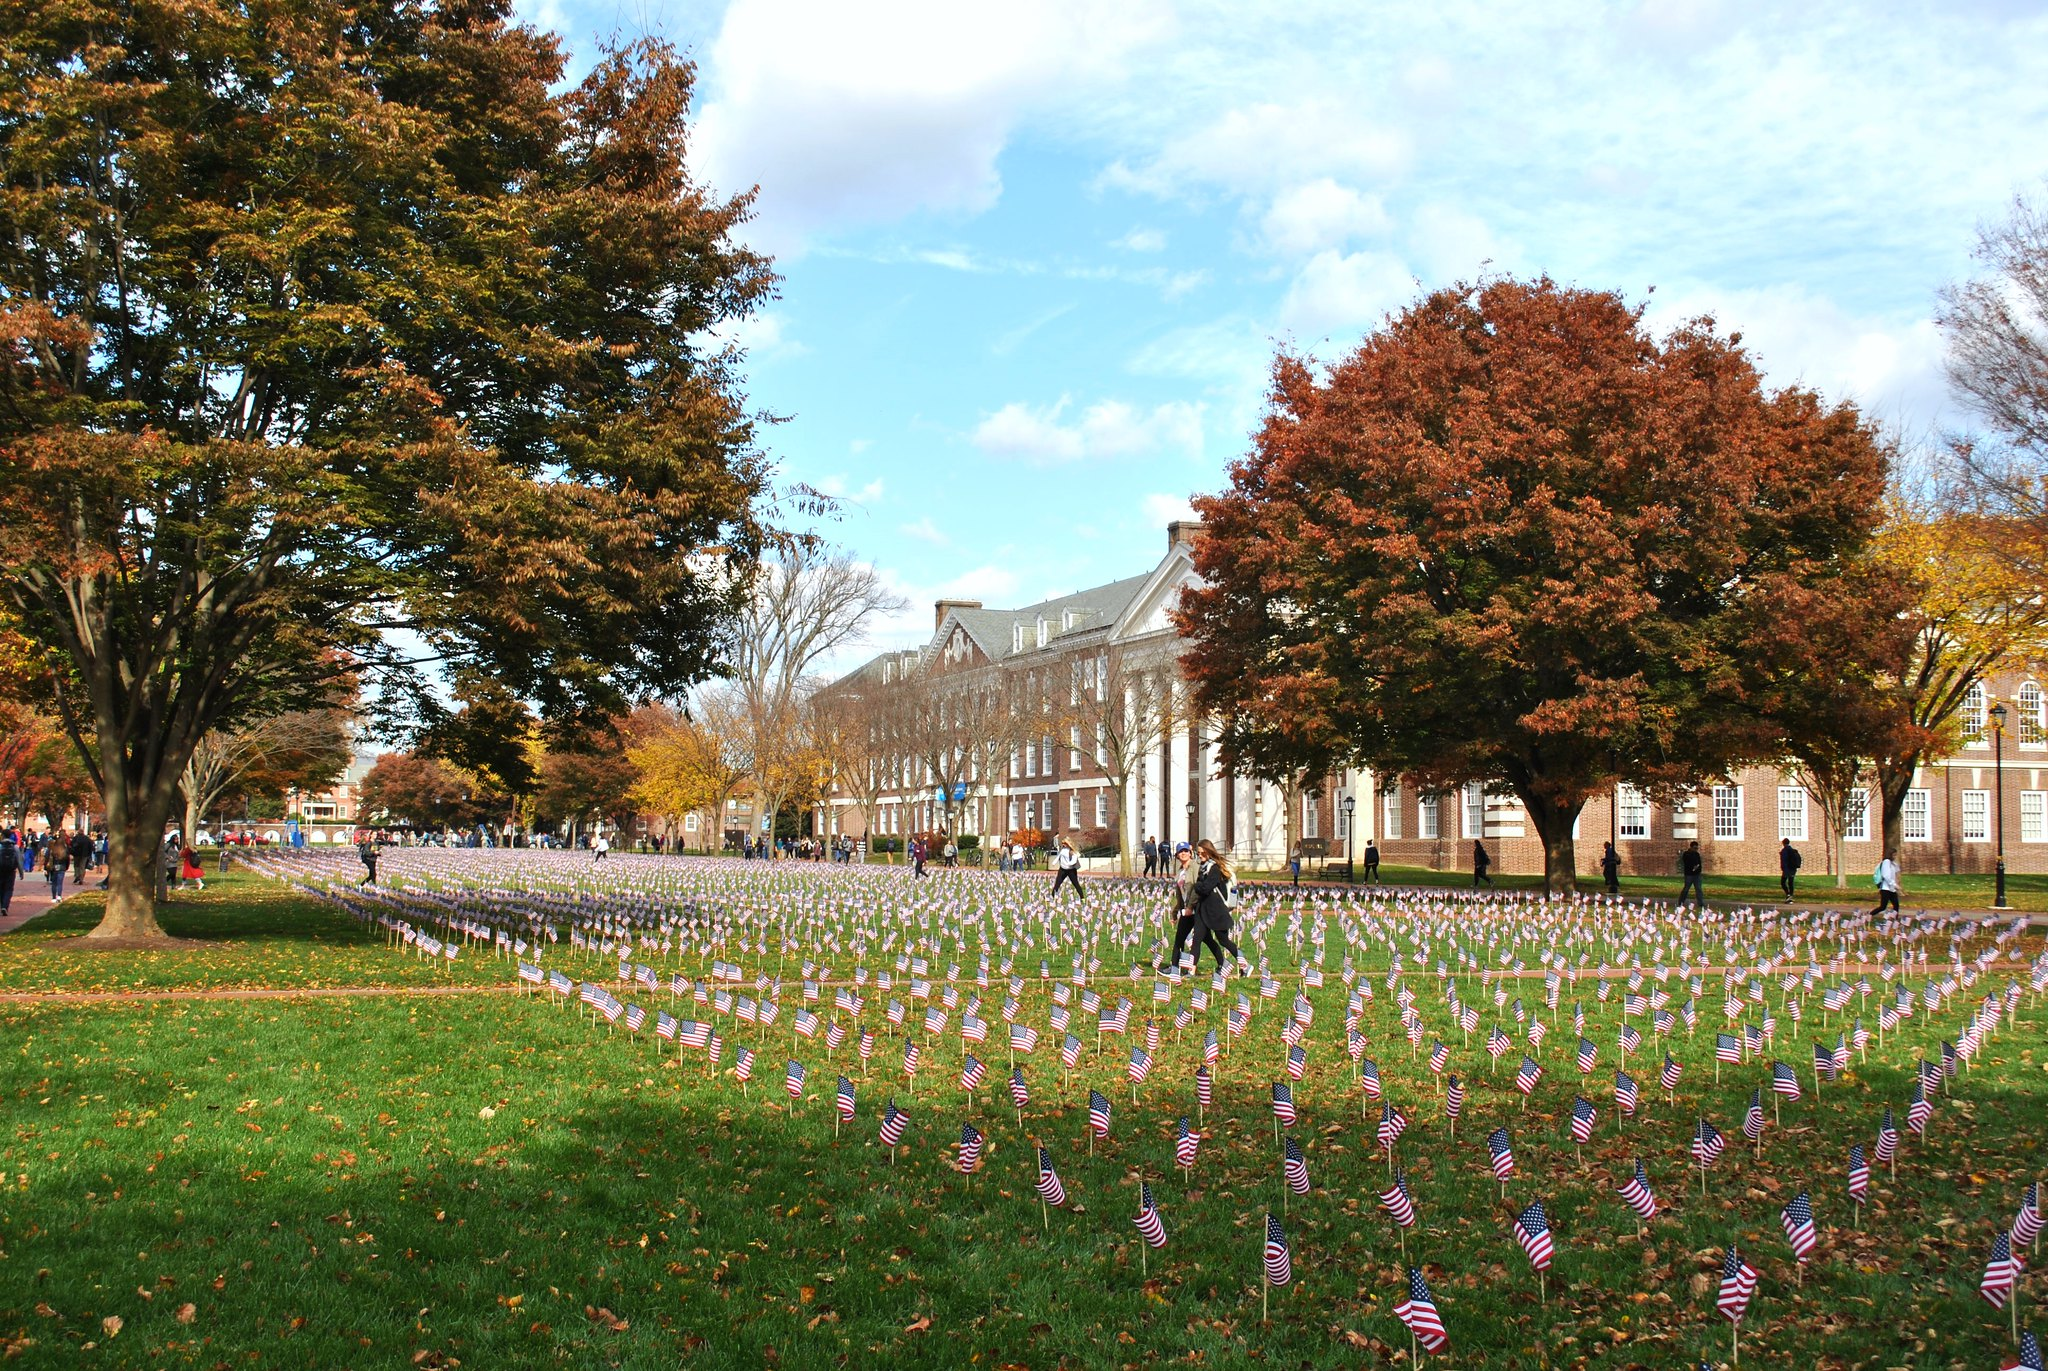 'Highest ideals of dedication and sacrifice'; Veterans are remembered throughout Blue Hen Veterans' week of commemoration